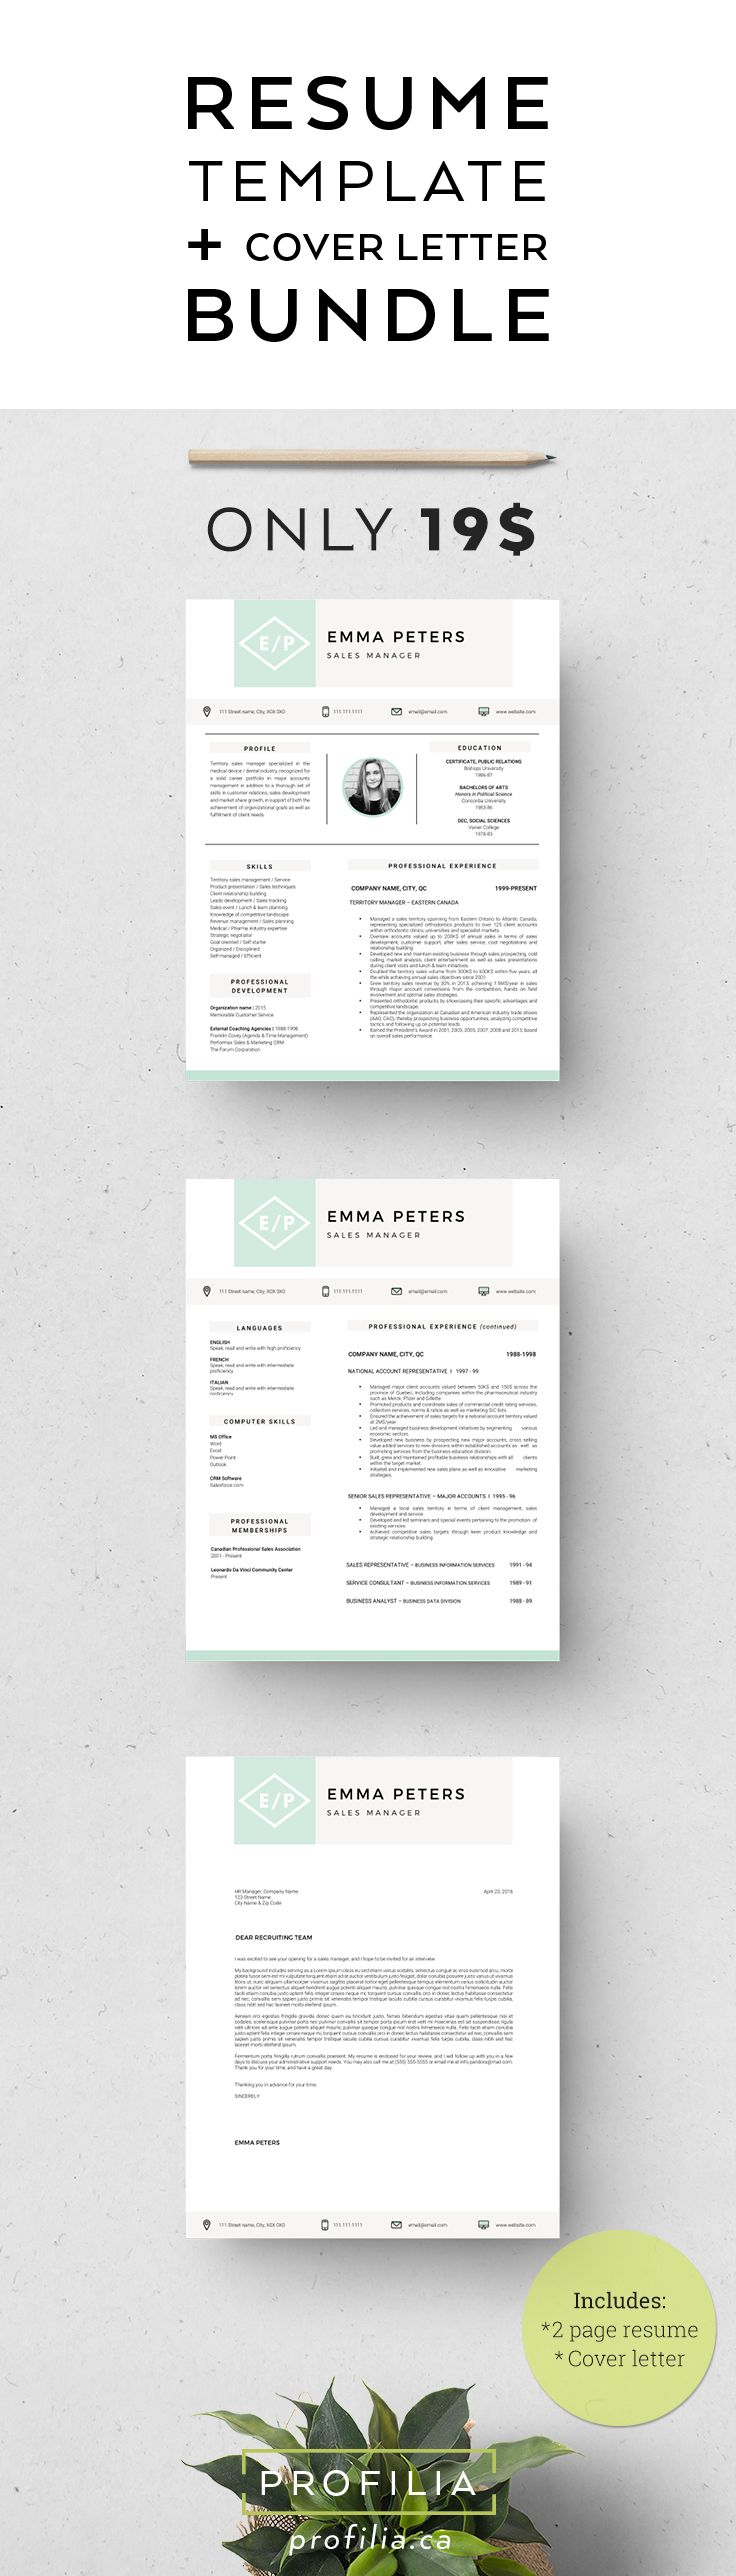 The 25+ Best Cover Letter Format Ideas On Pinterest | Job Cover Letter  Examples, Cover Letter Format Examples And Resume Cover Letter Examples  Cover Letter And Resume Template